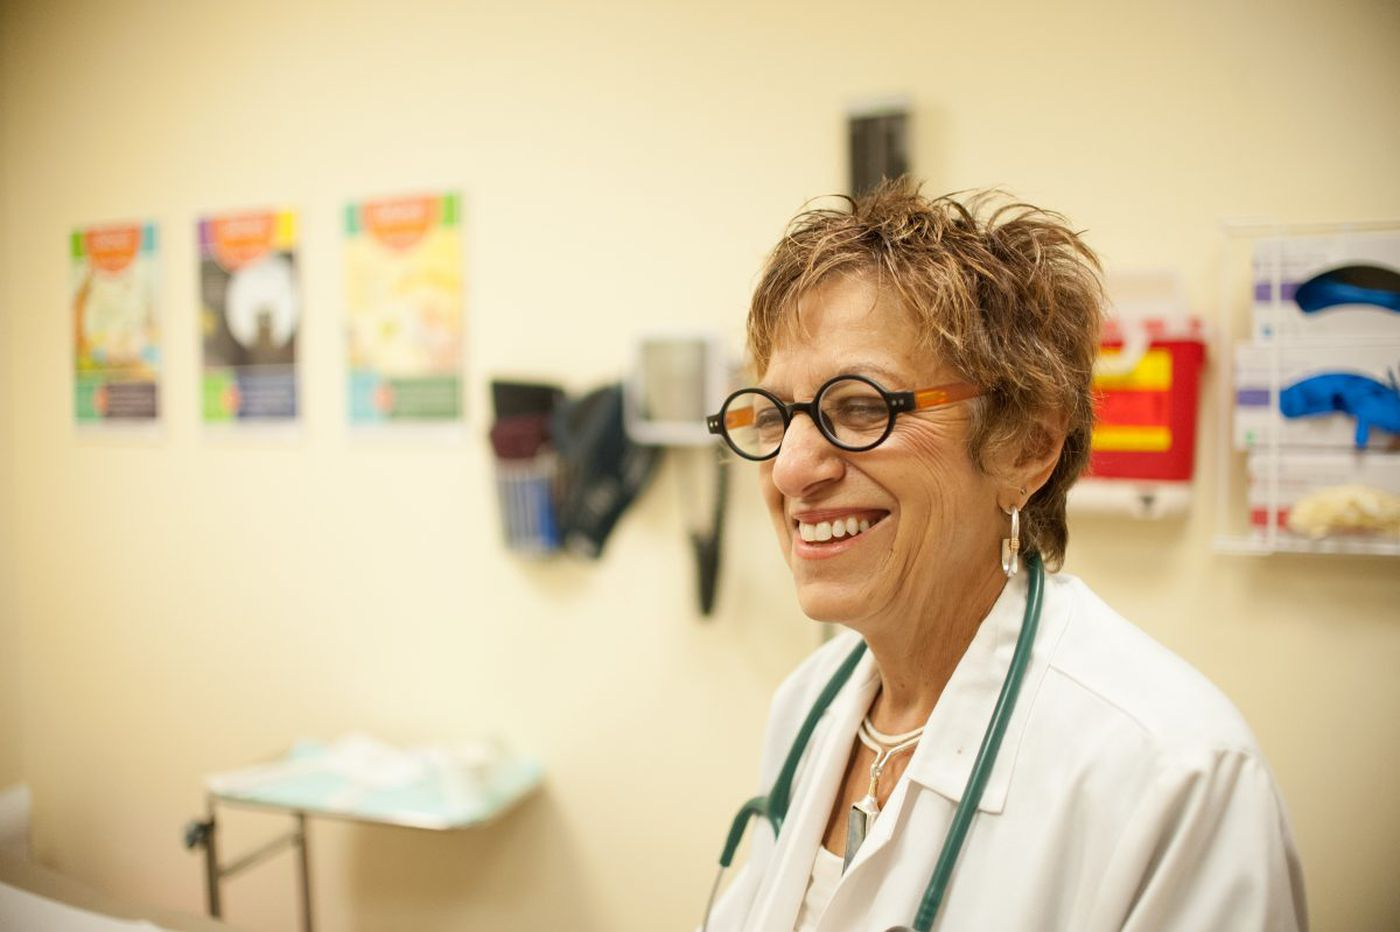 Donna Torrisi: Praying for health care for the poor